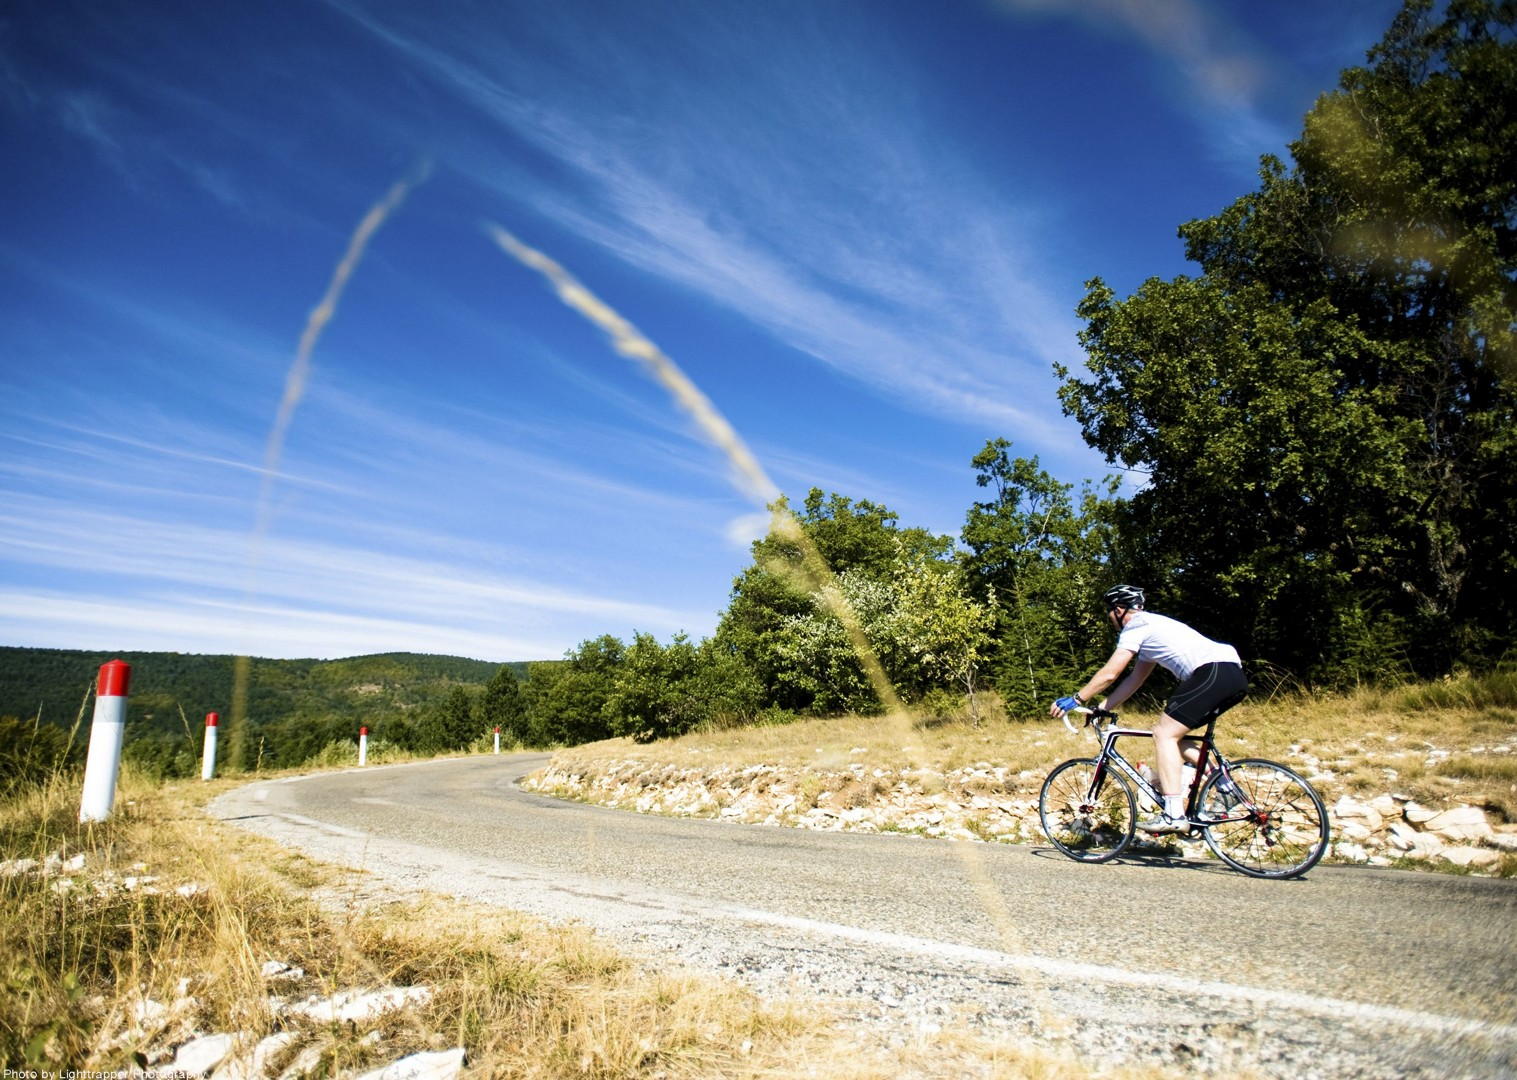 french-countryside-cycling-smooth-tarmac-nature.jpg - France - Alsace, Burgundy and Beaujolais - Guided Road Cycling Holiday - Road Cycling